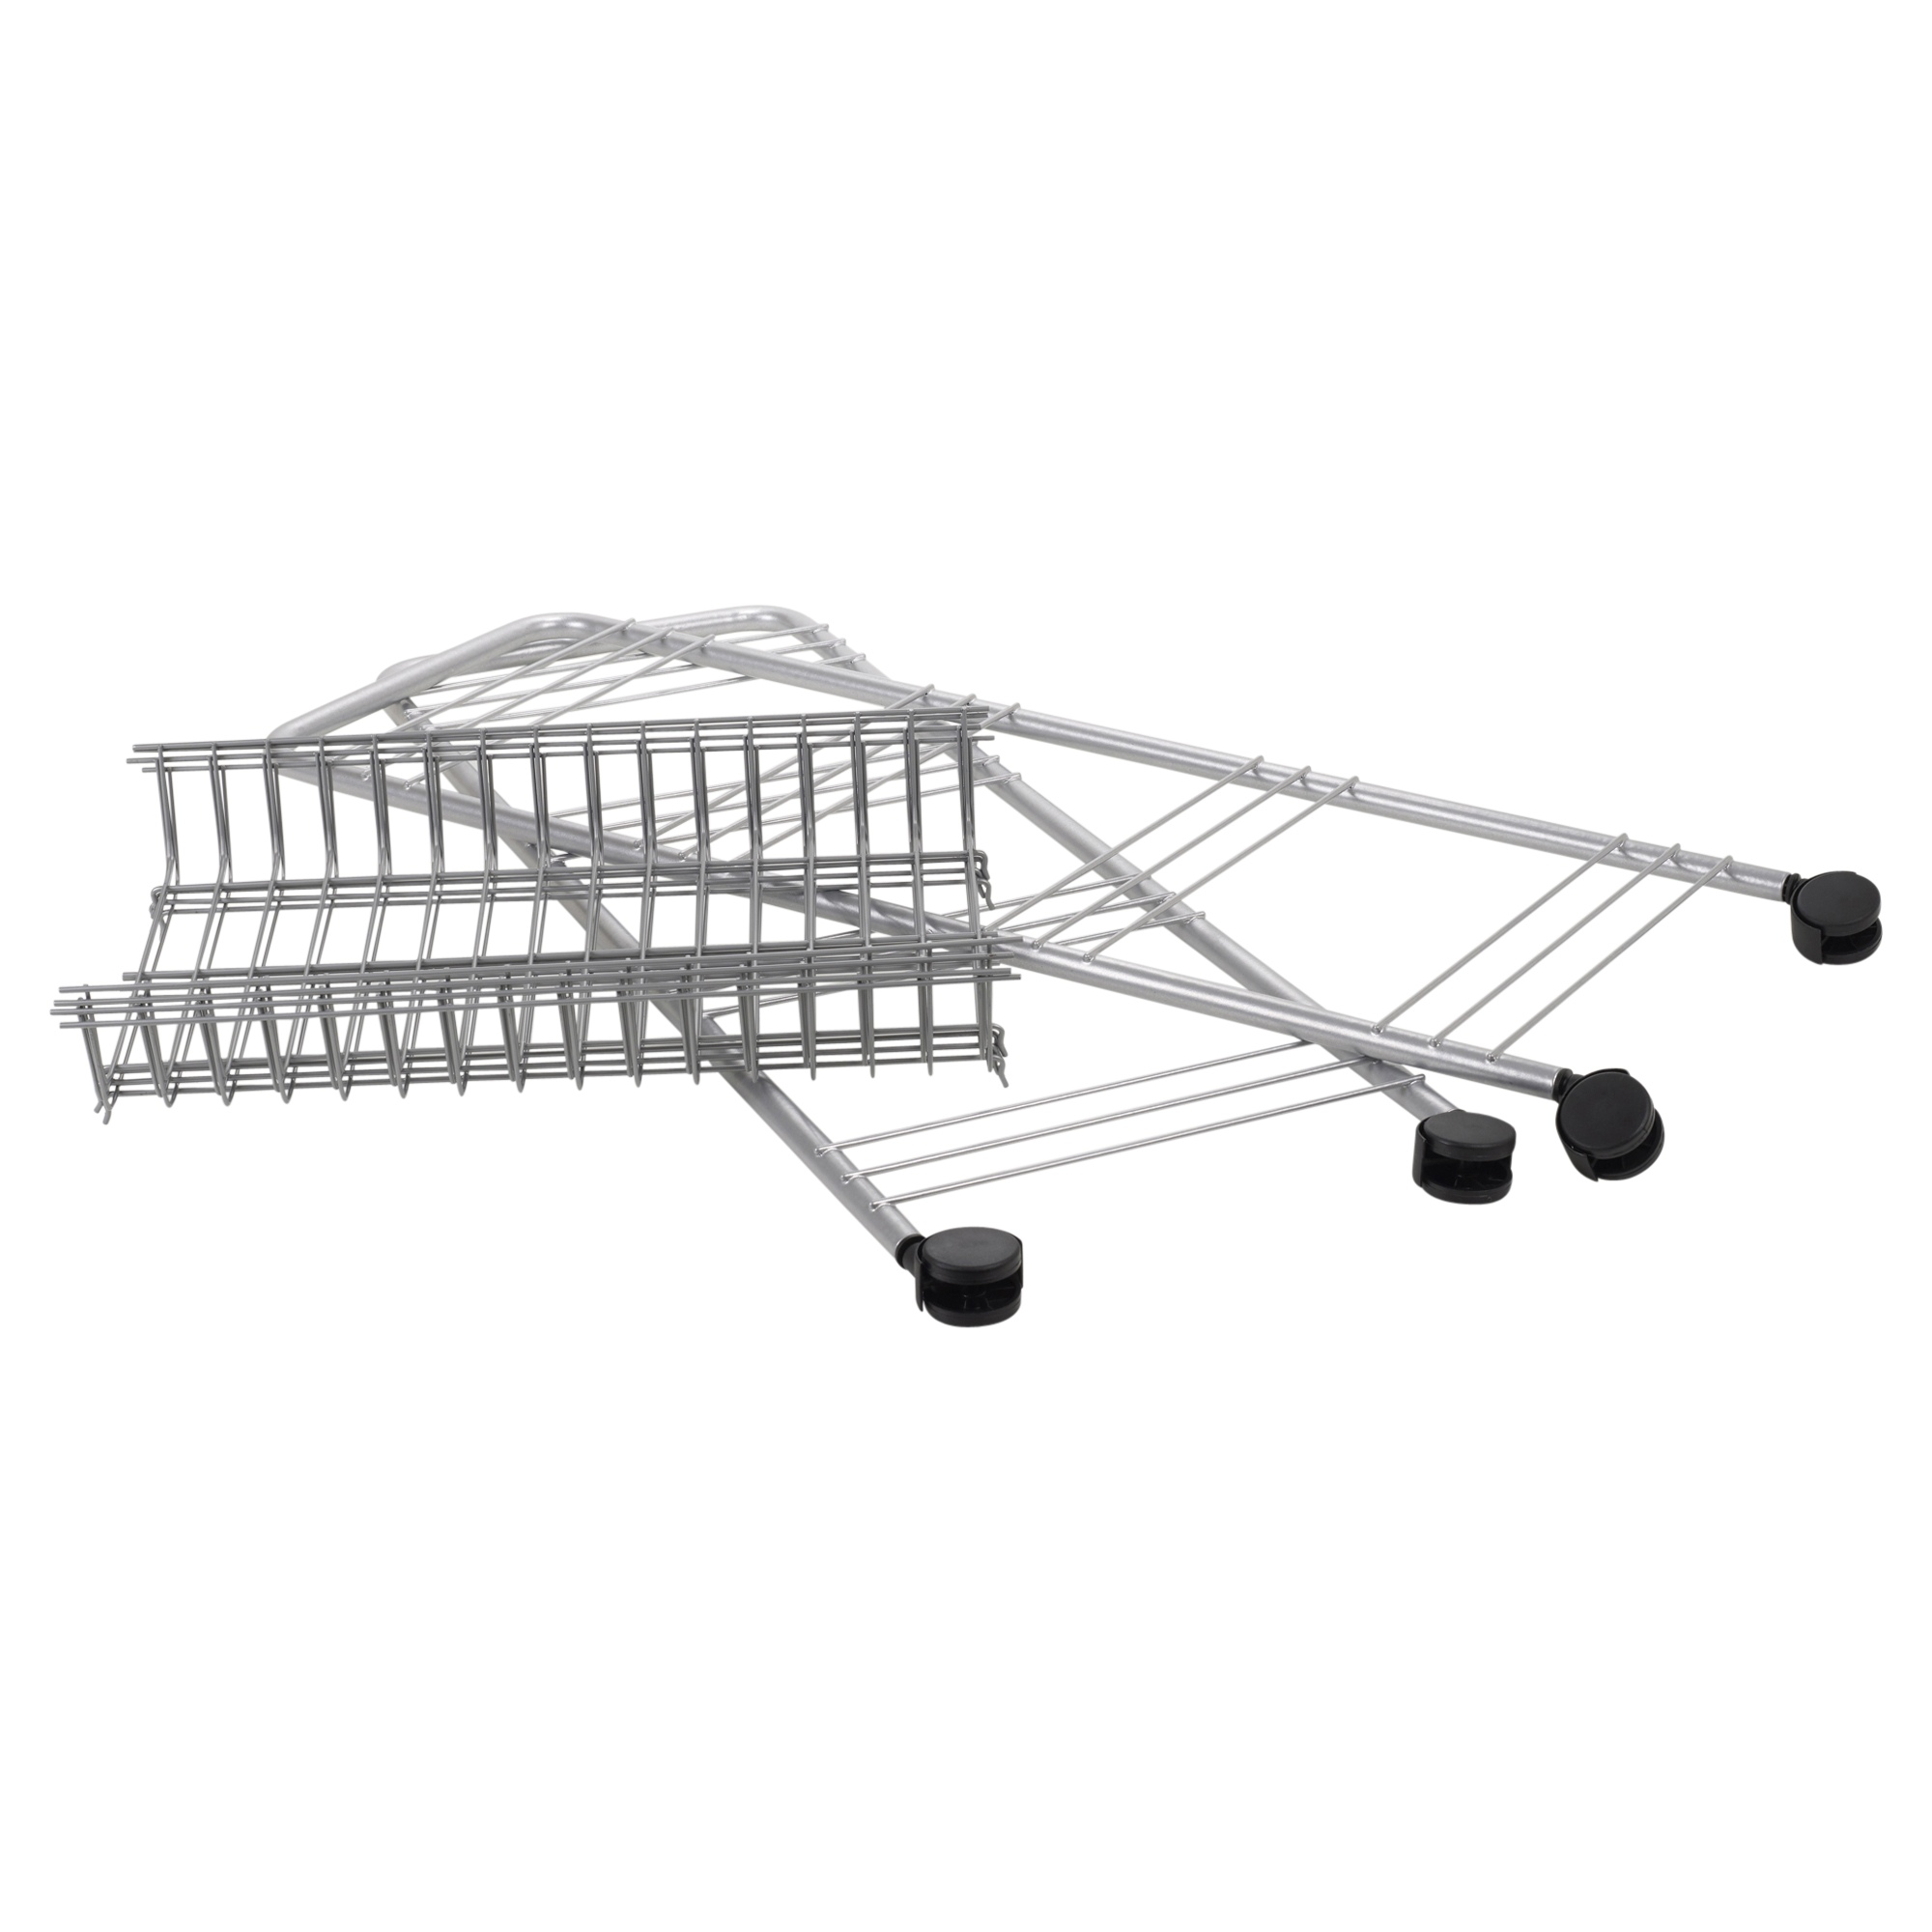 3 4 Tier Plastic Wheels Metal Frame Storage Trolley Basket